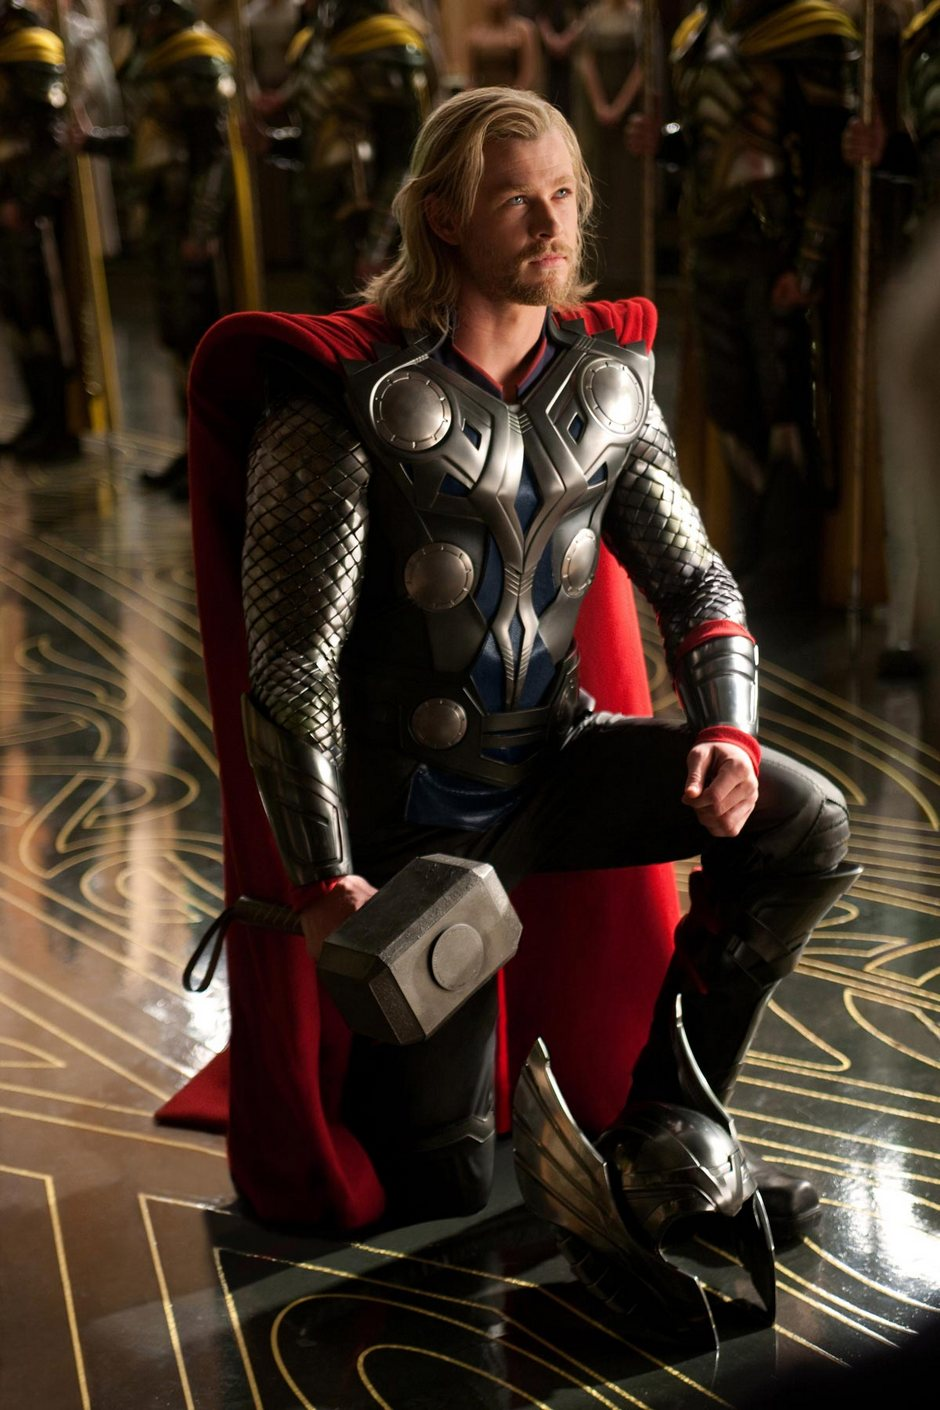 Hot Ink: 10 Sexiest Pictures of Chris Hemsworth: He Can ...